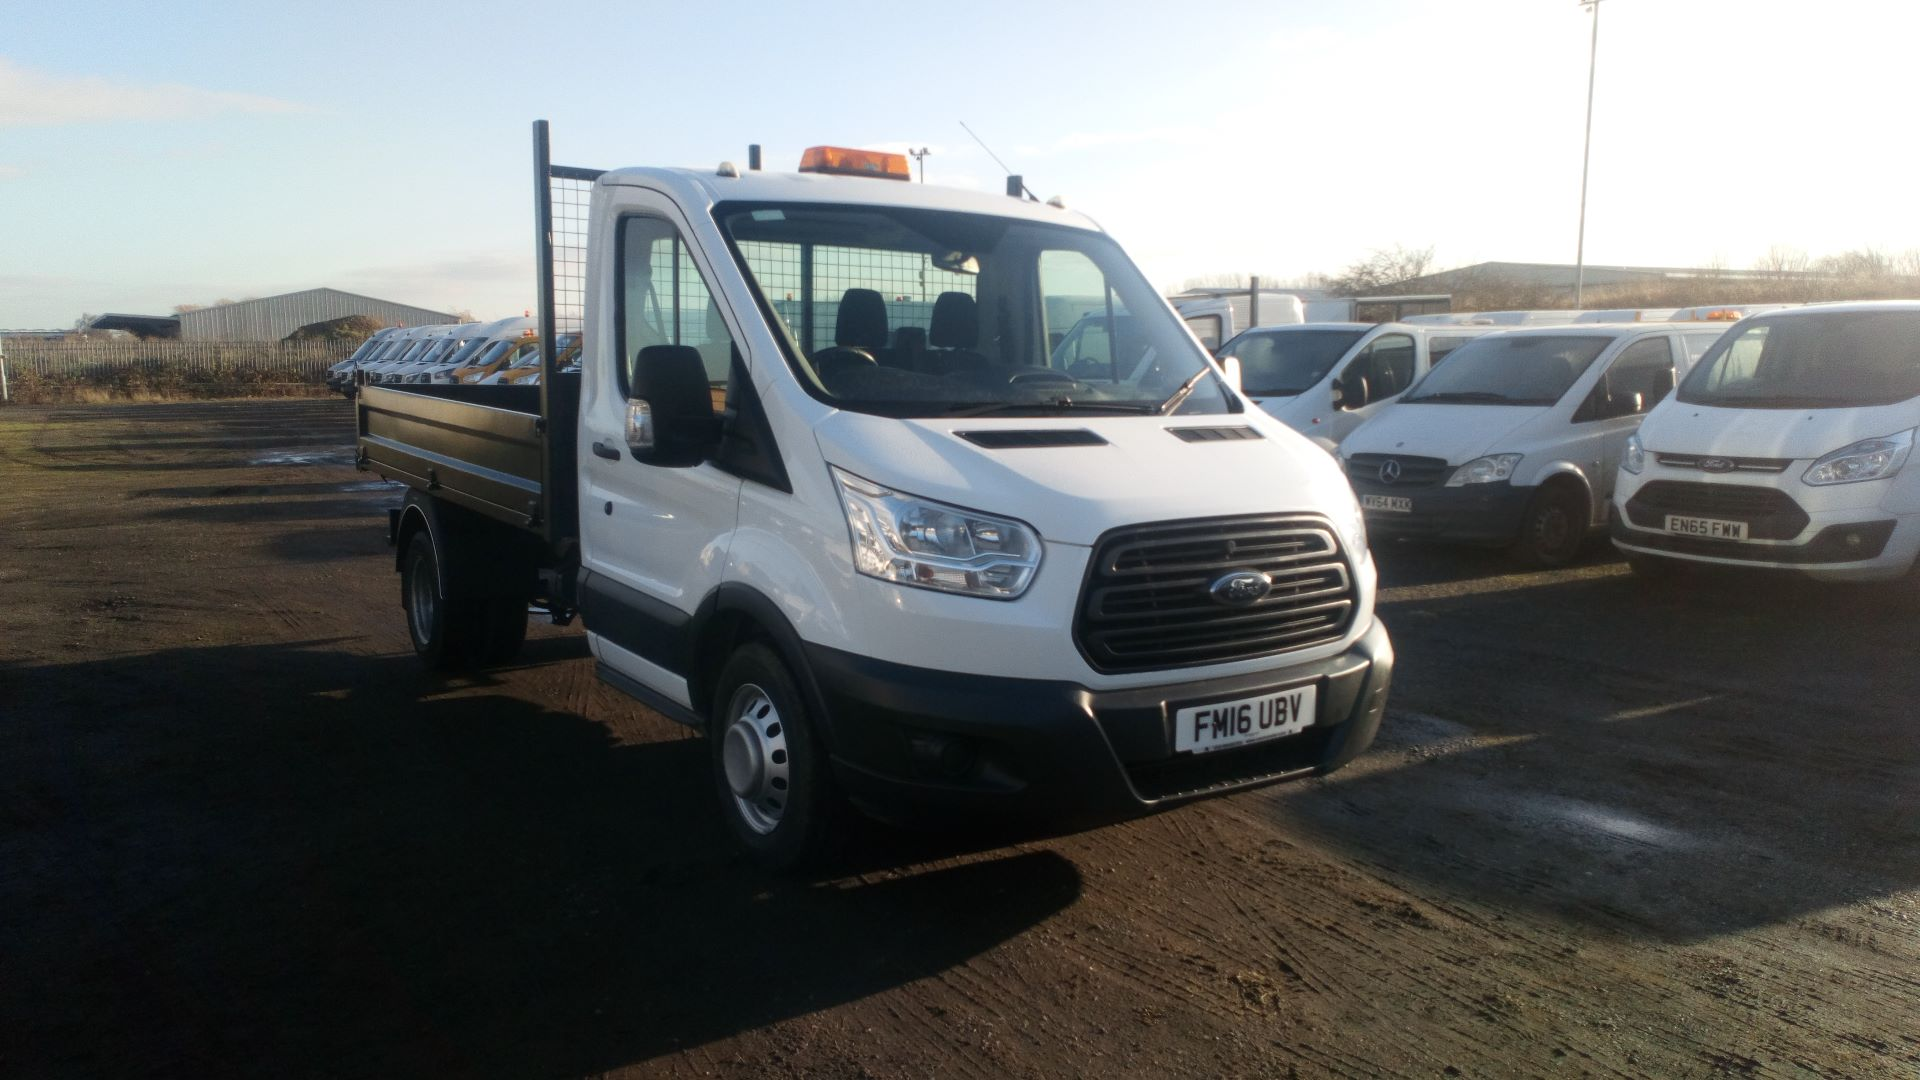 2016 Ford Transit 2.2 Tdci 125Ps Chassis Cab (FM16UBV)